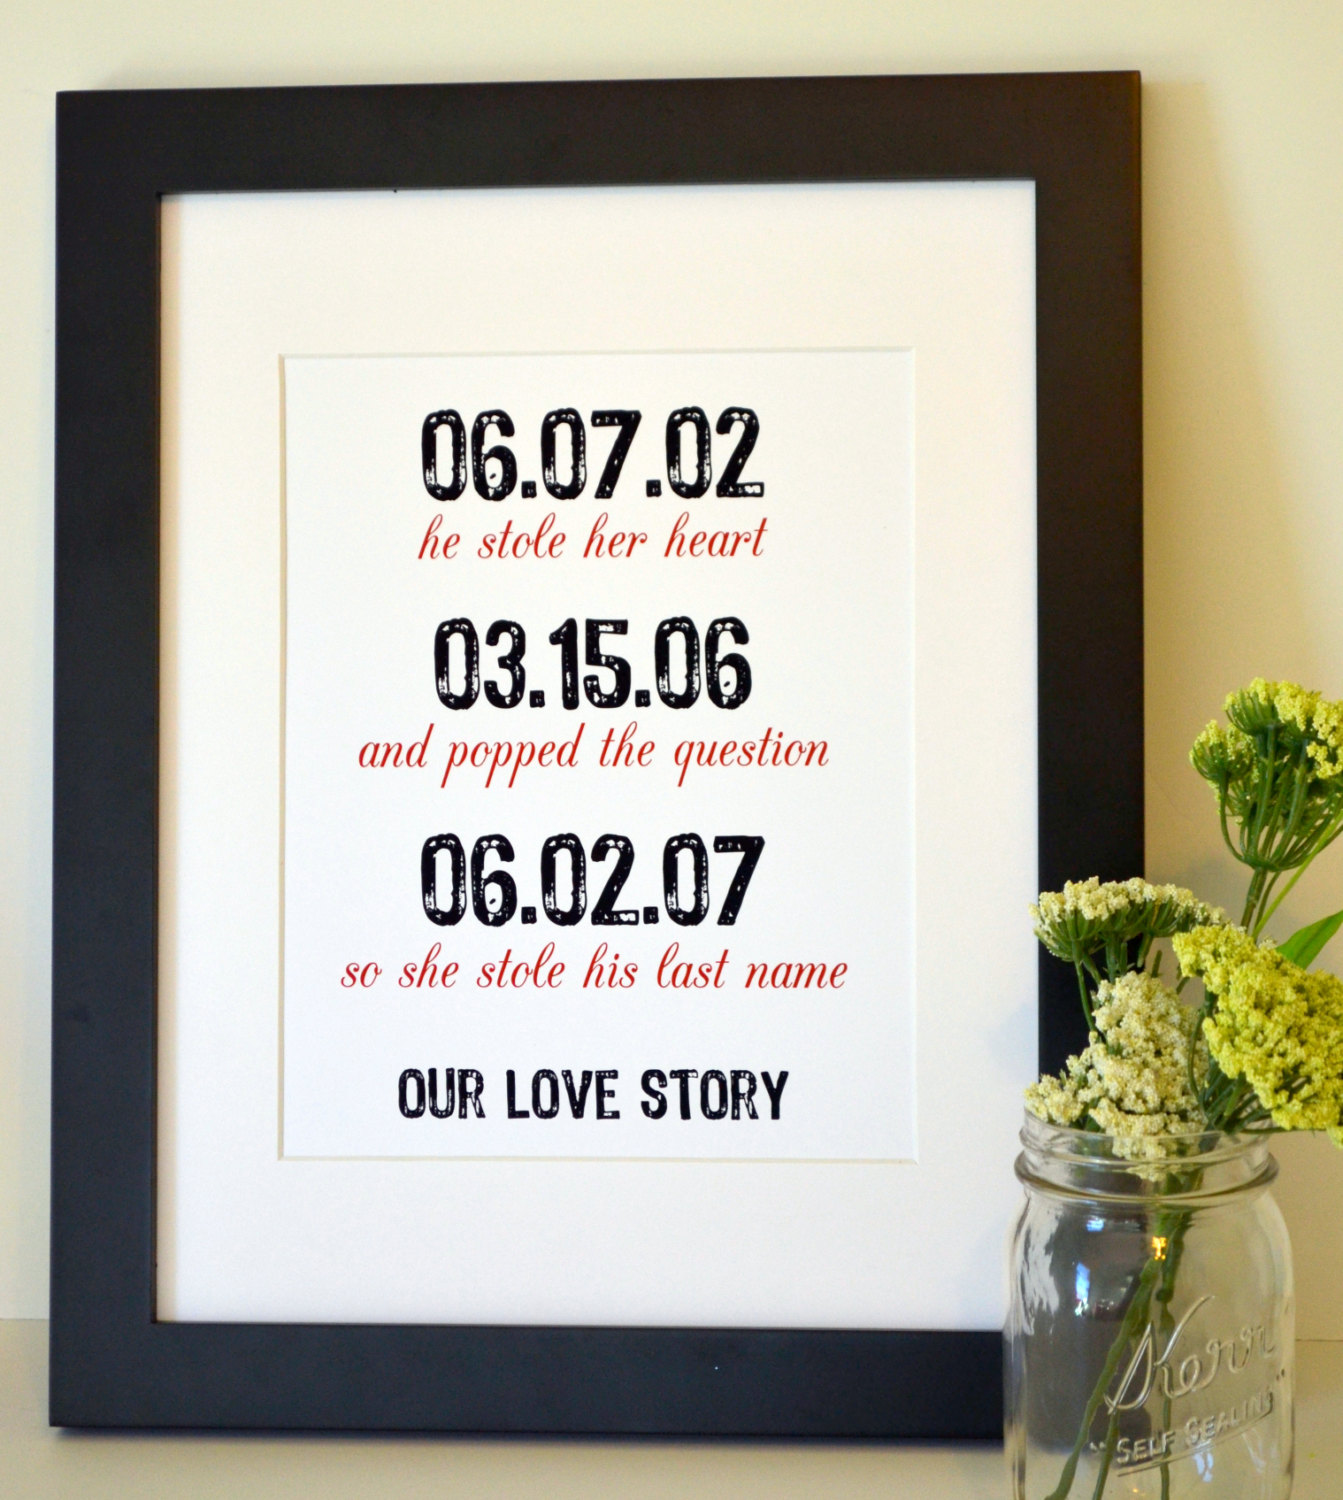 Wedding Ideas To Share Your Story